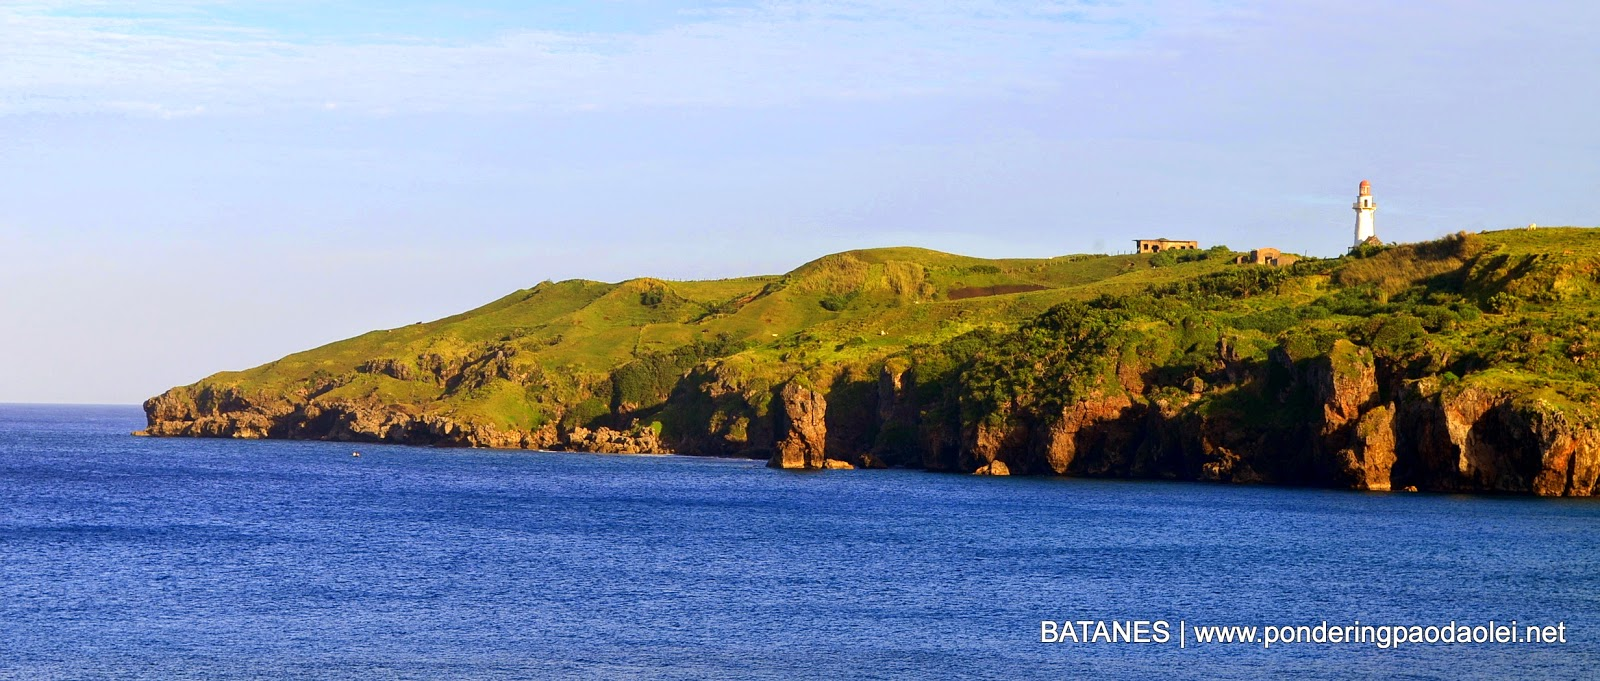 The Kingdom of Batanes